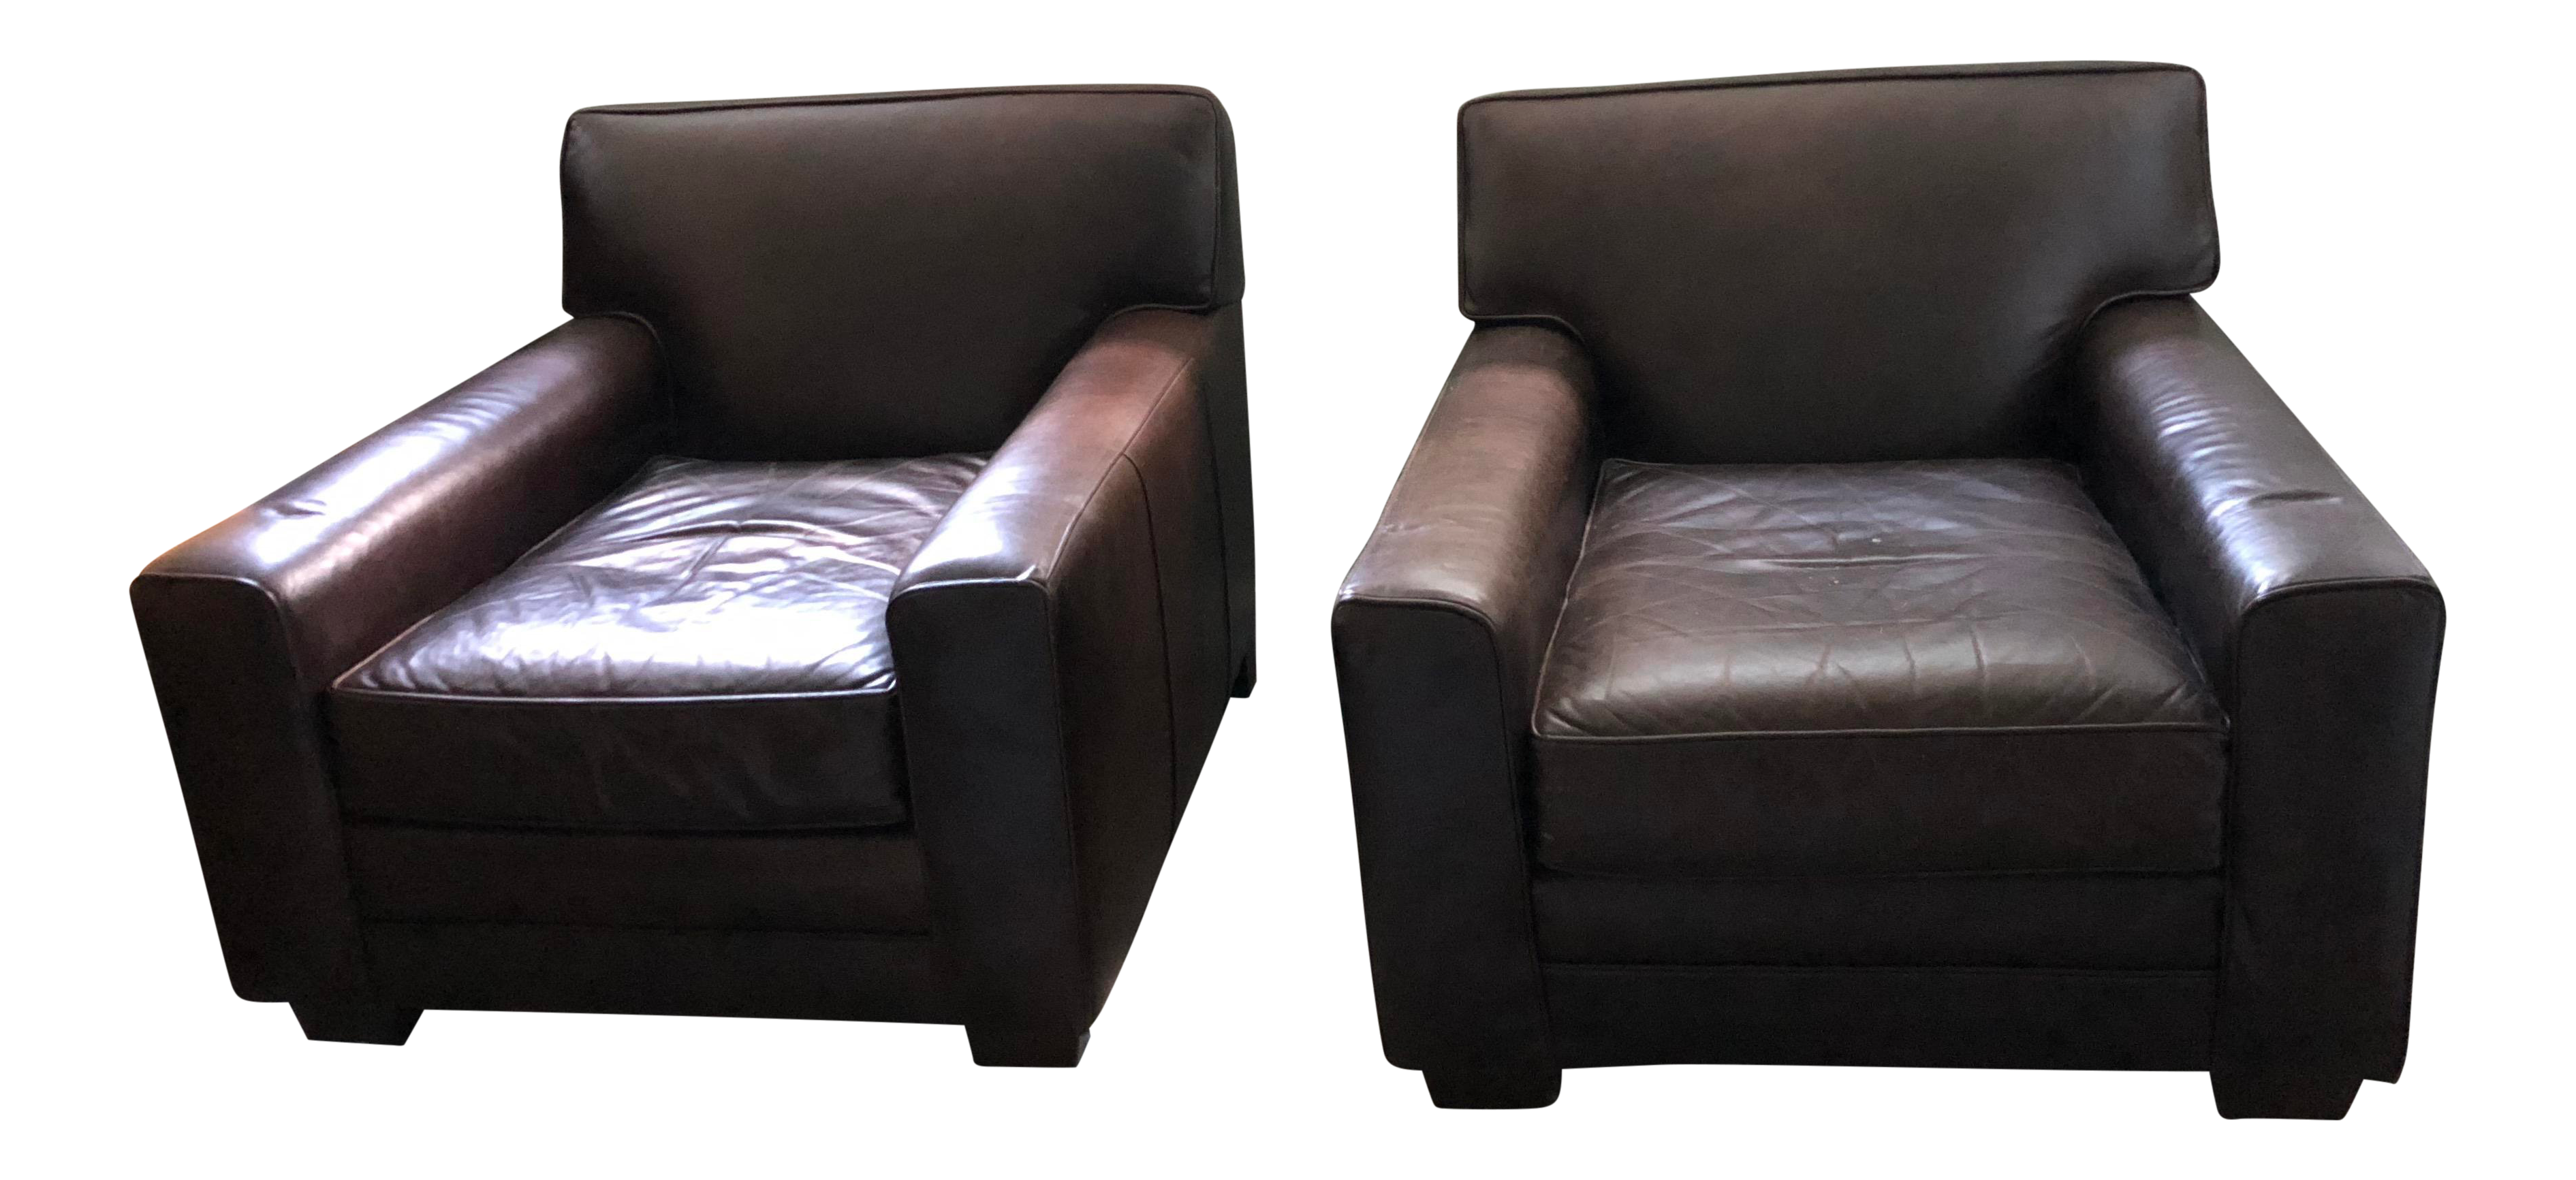 Pair Of Chocolate Brown Leather Club Chairs From Pottery Barn Mitchel  Gold/Bob Williams